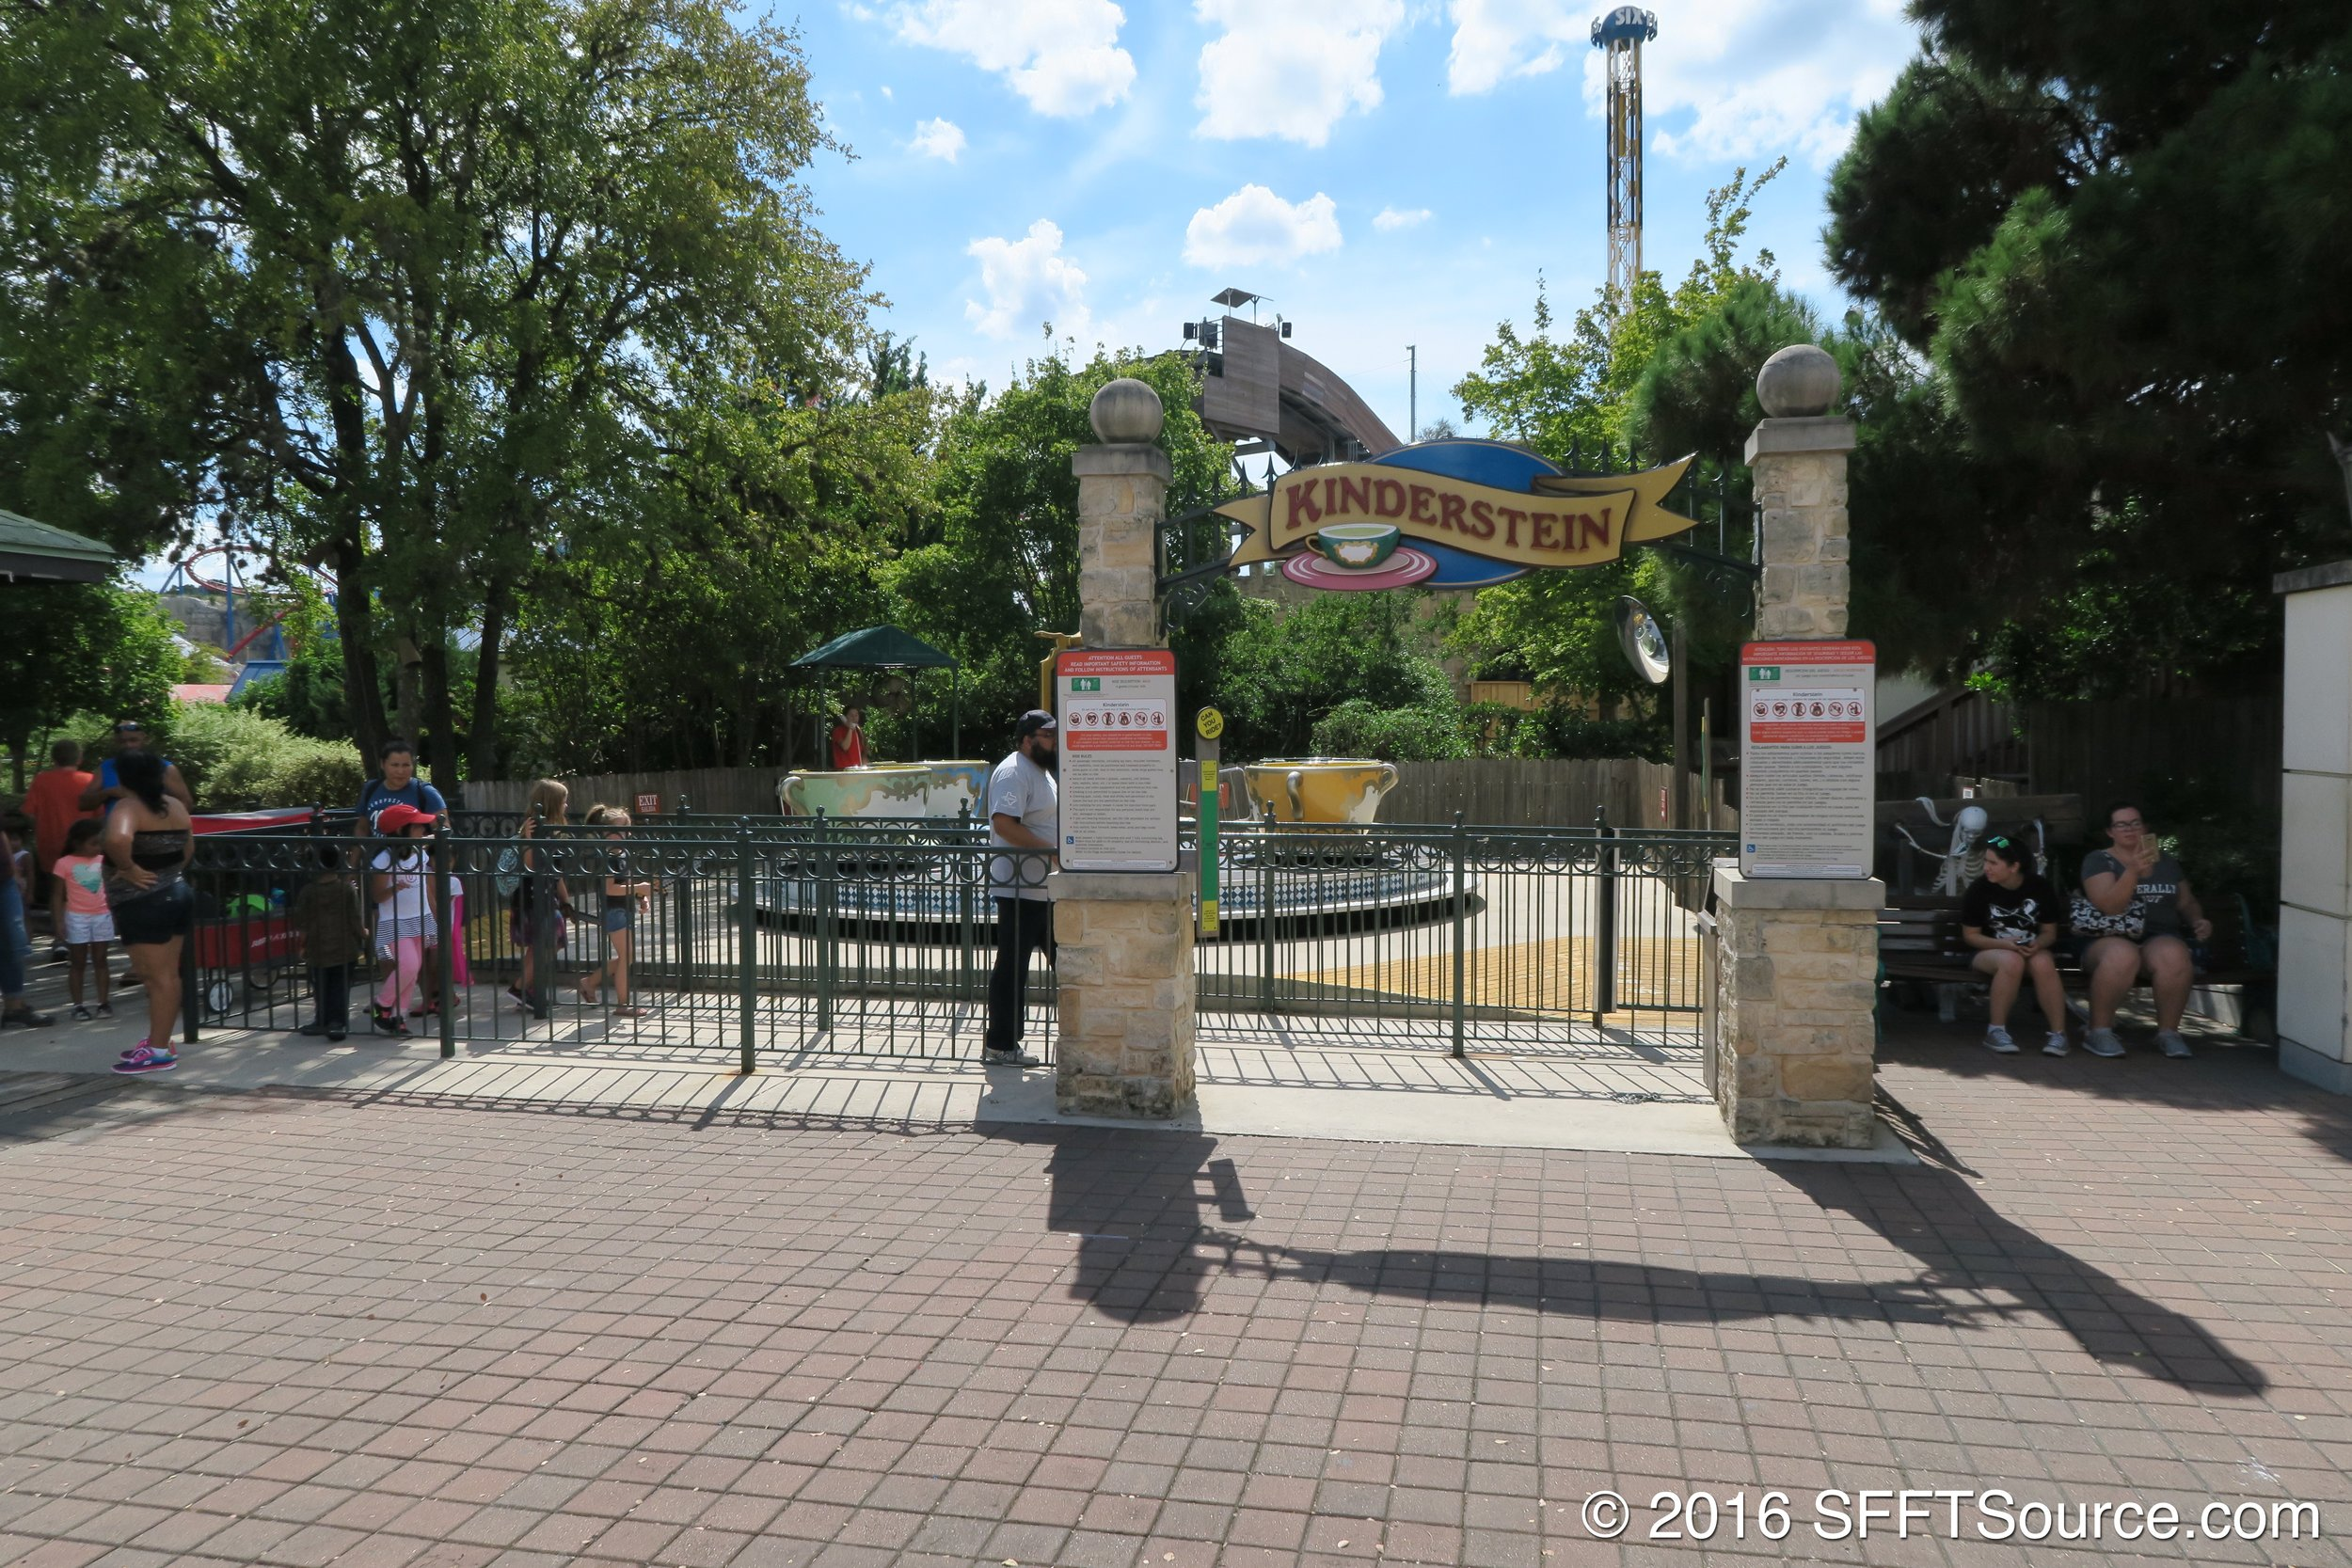 The entrance to Kinderstein.